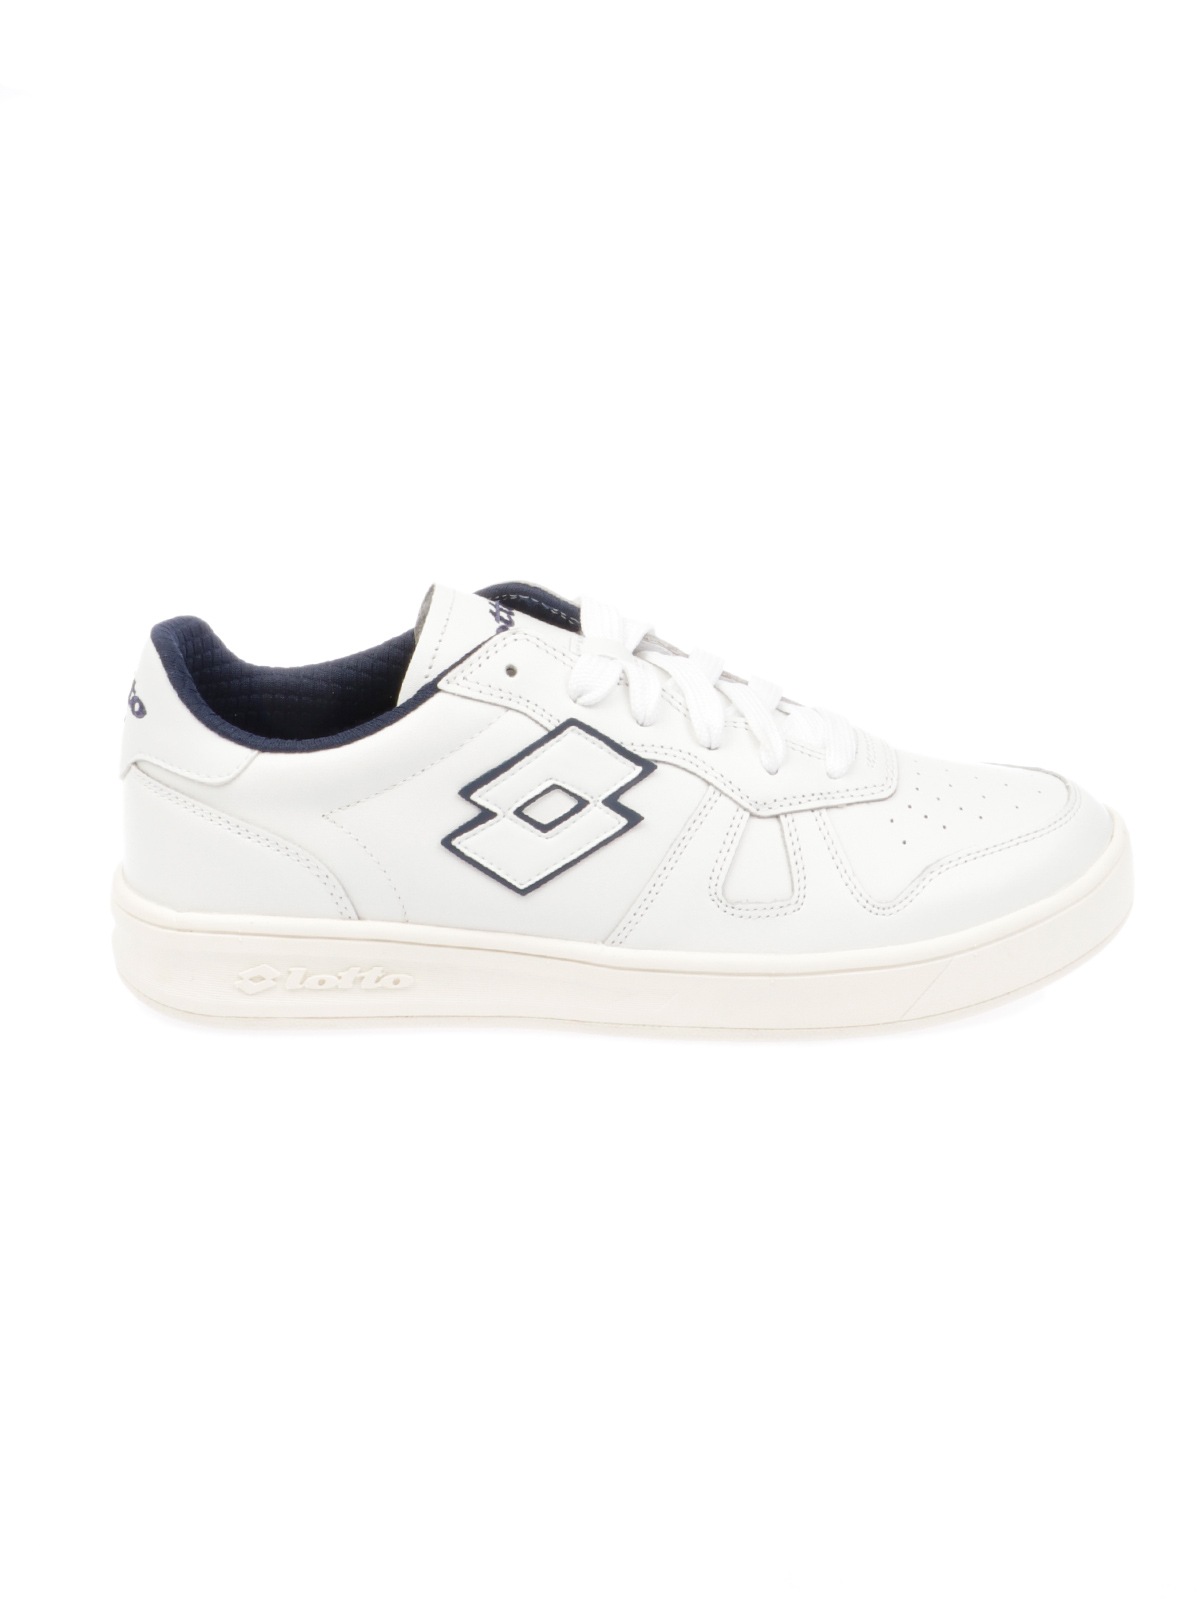 LOTTO Men's Shoes Laced White Leather